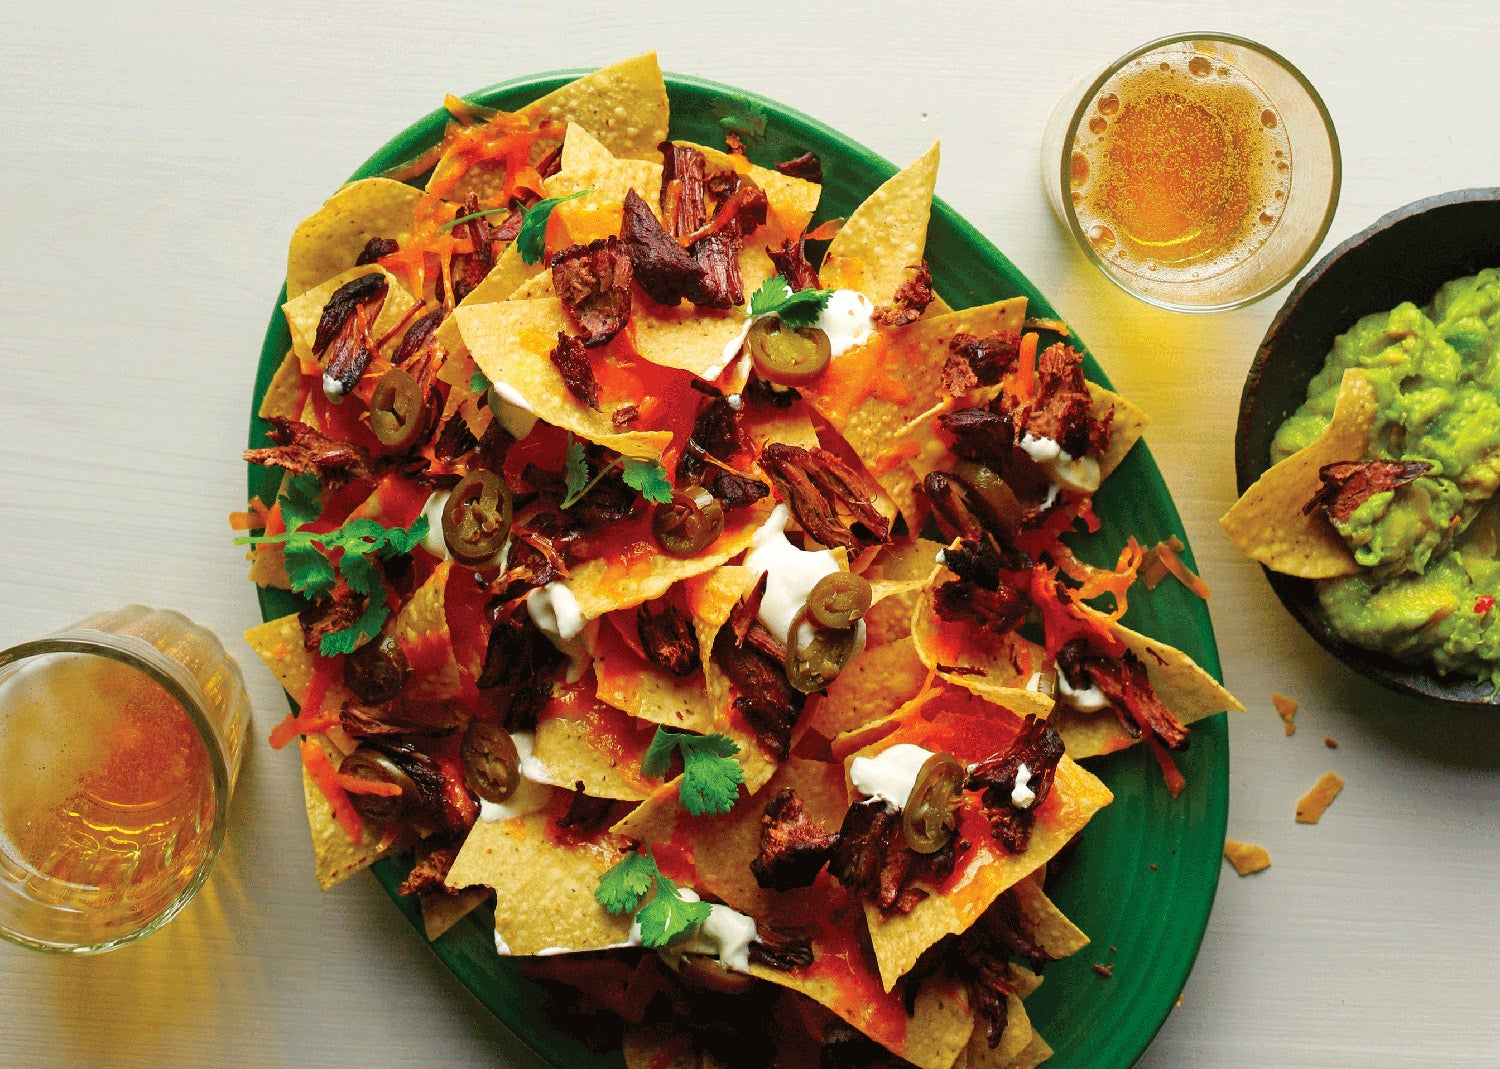 Venison carnitas nachoes.